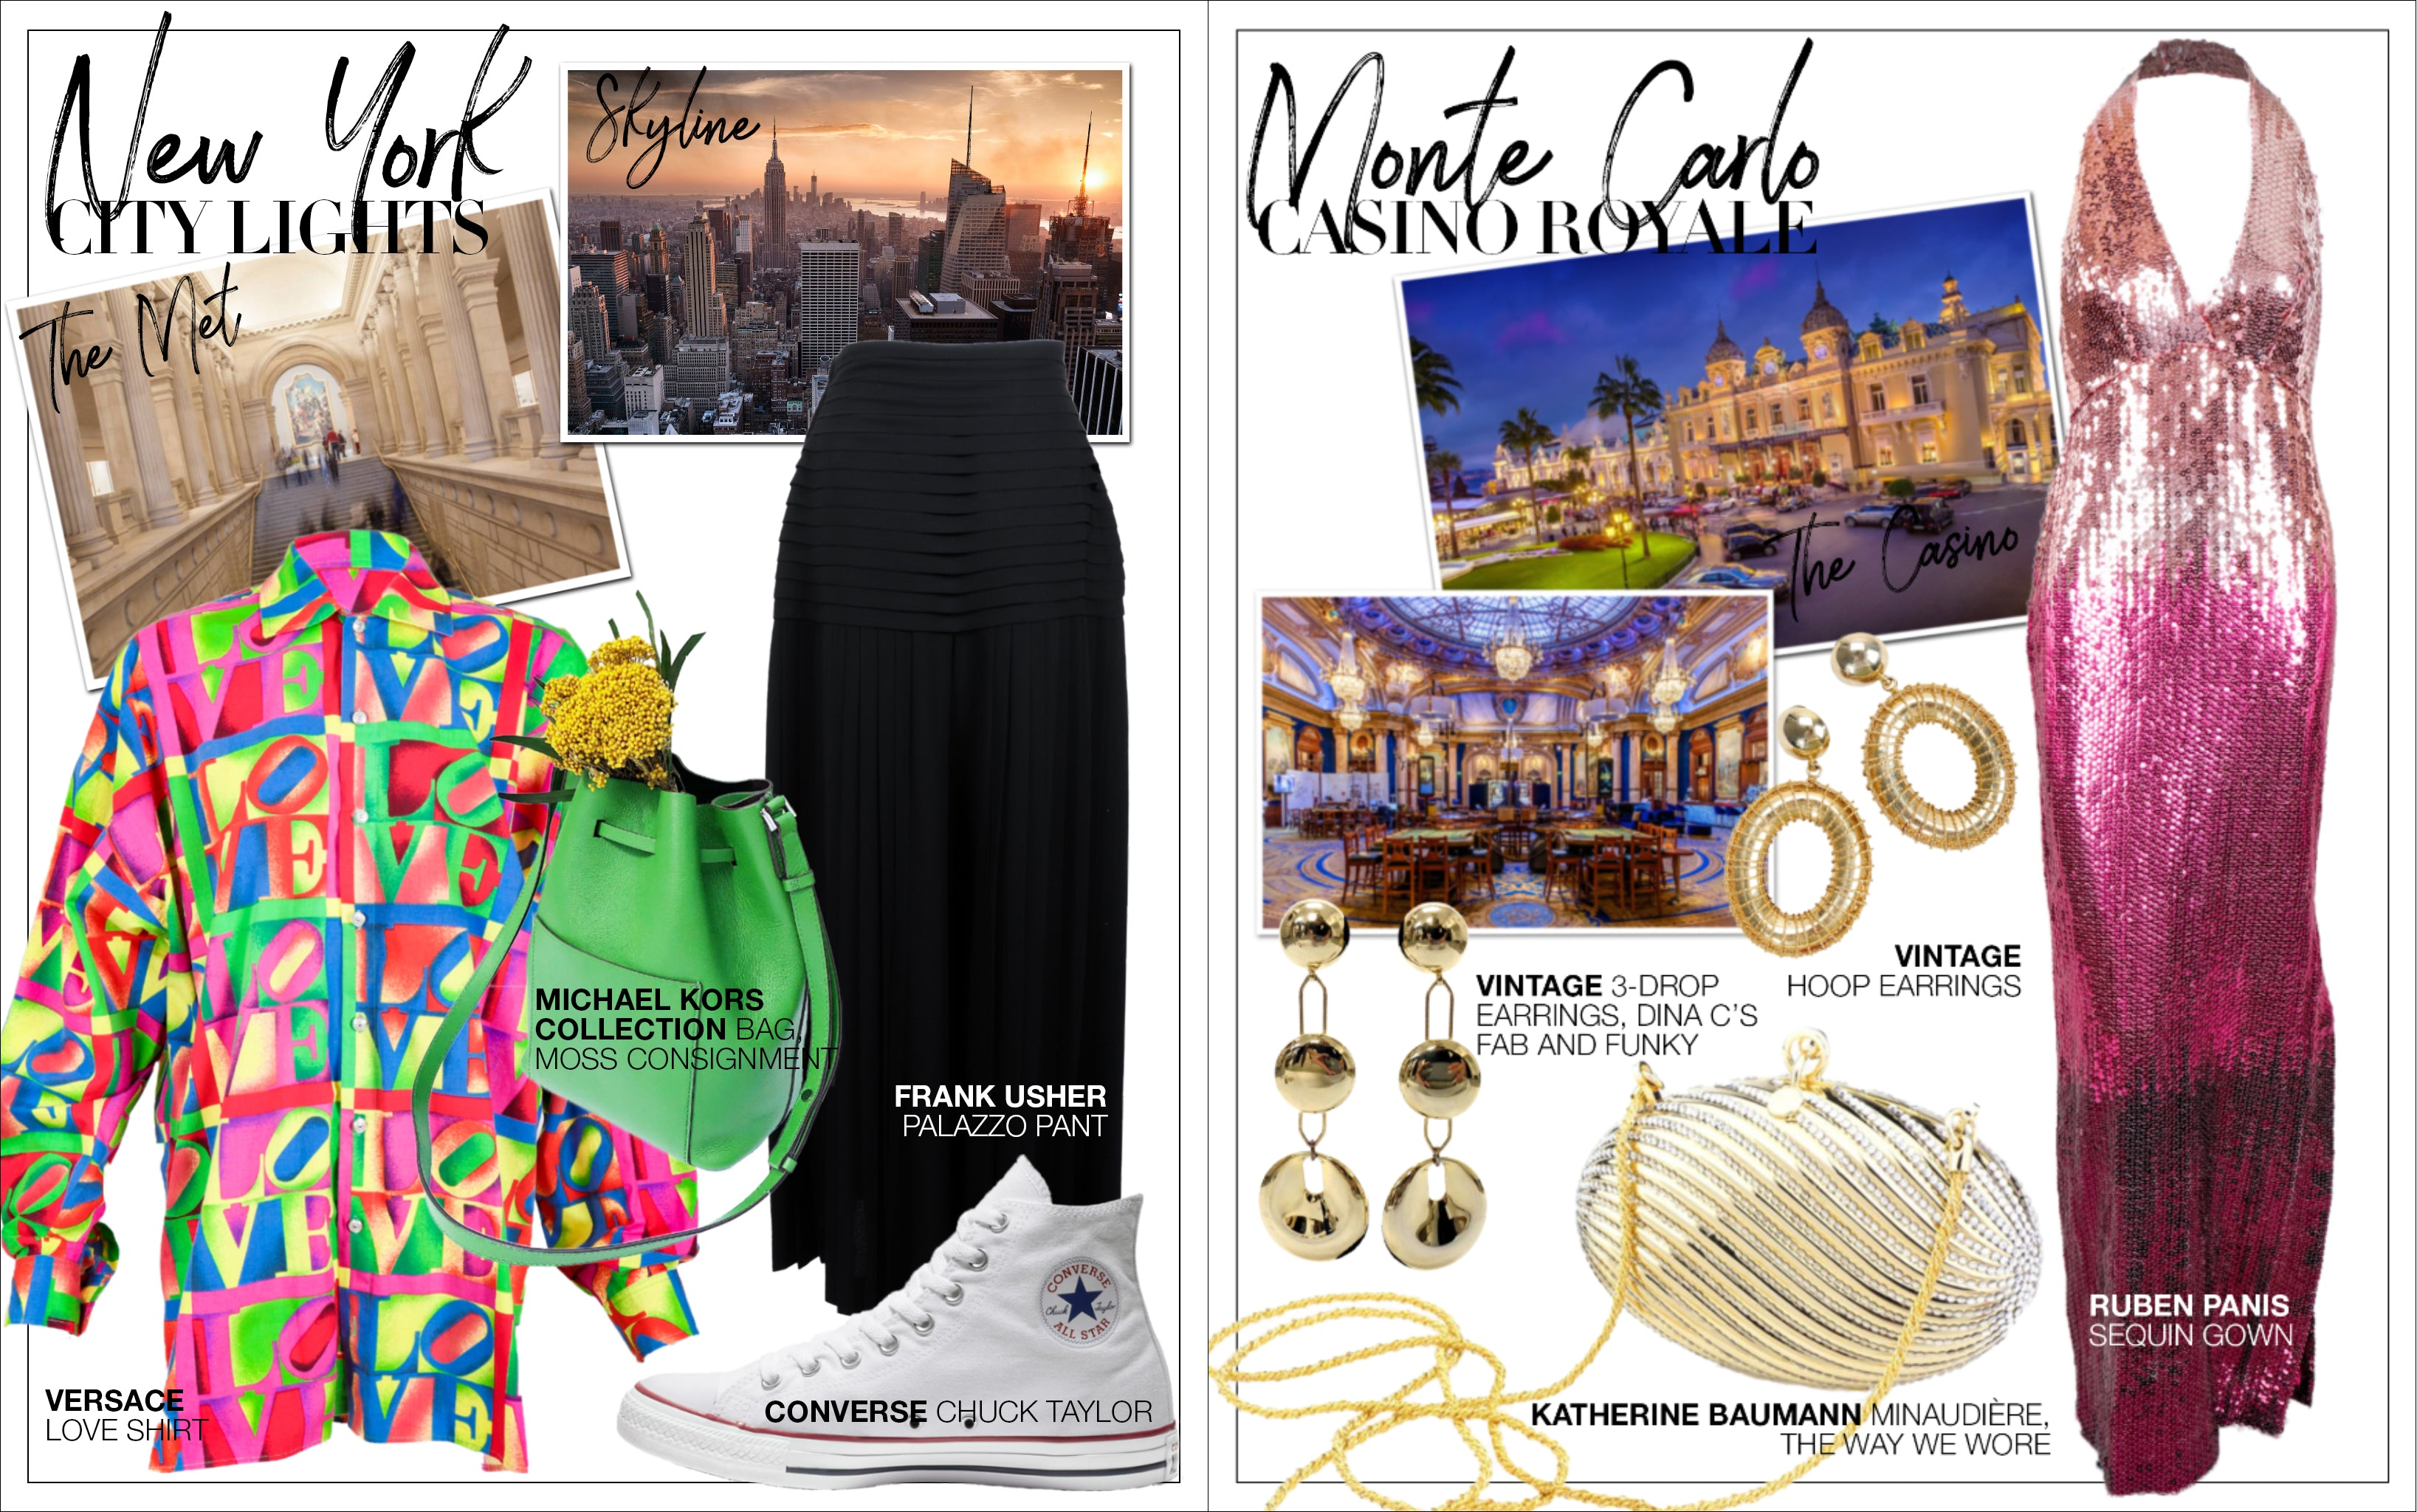 Recess DressCode Escapism Covid Quarantine Fantasy Travel Shopping Guide New York Monte Carlo